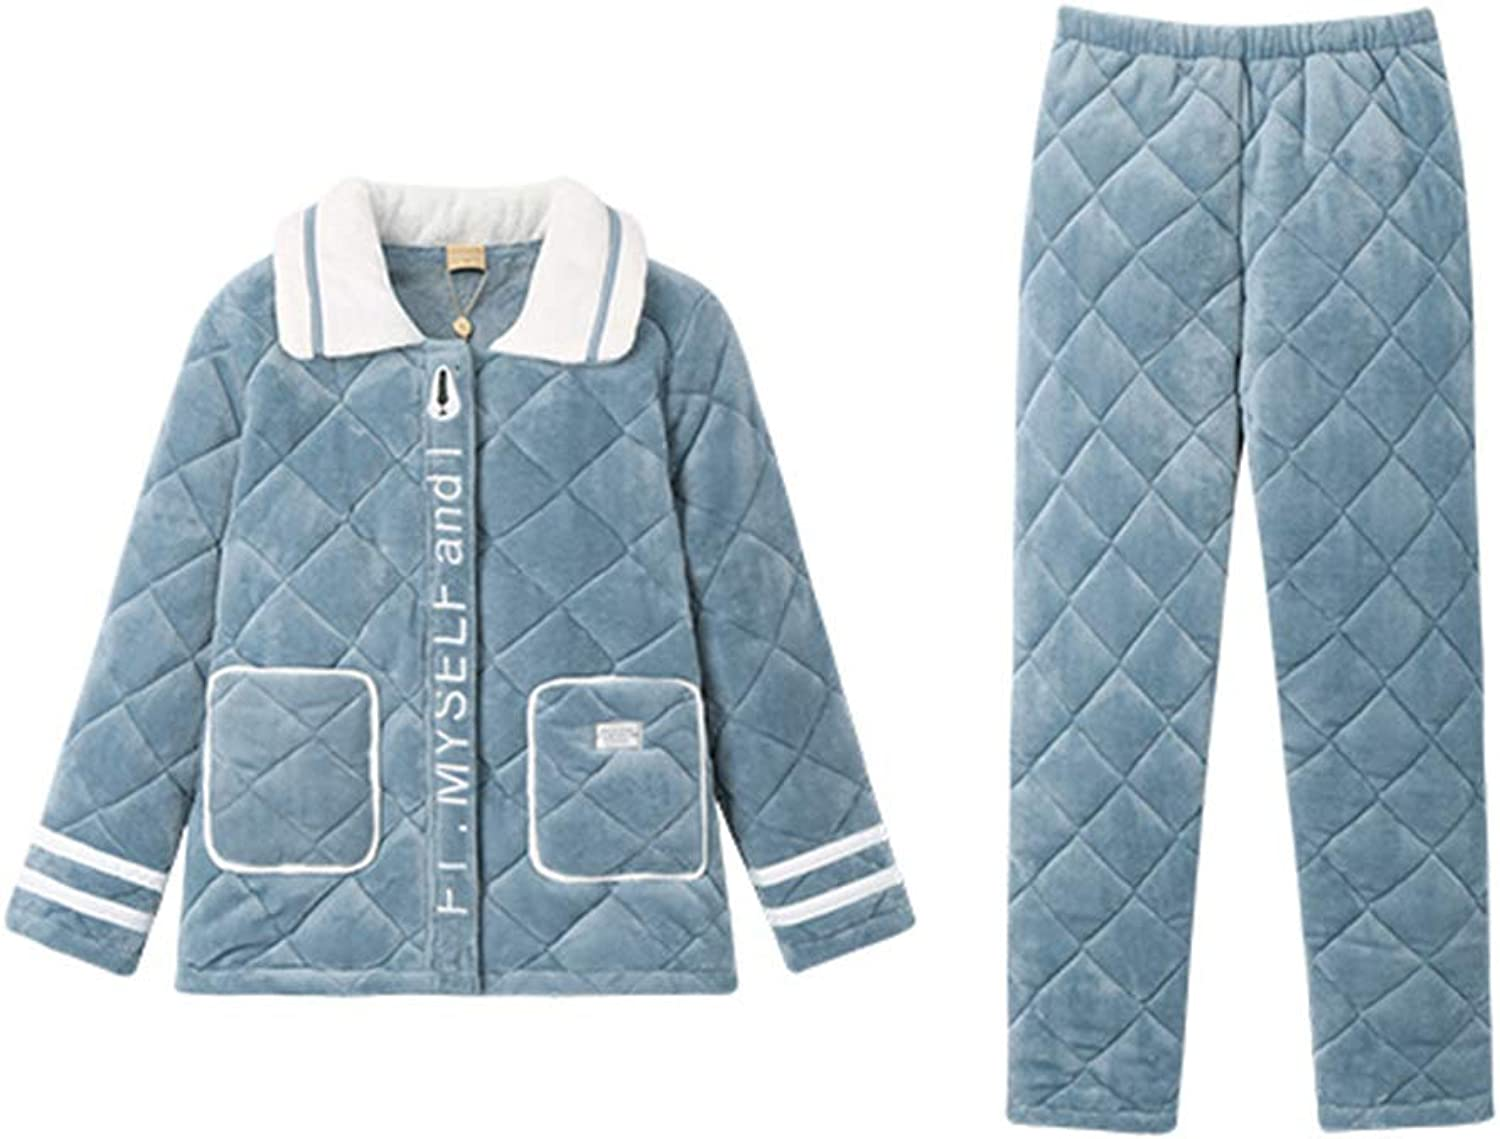 Pajamas Women's Winter Coral Velvet Quilted Cute ThreeLayer Thickening can be Worn Outside Home Service Suit (color   bluee, Size   L)